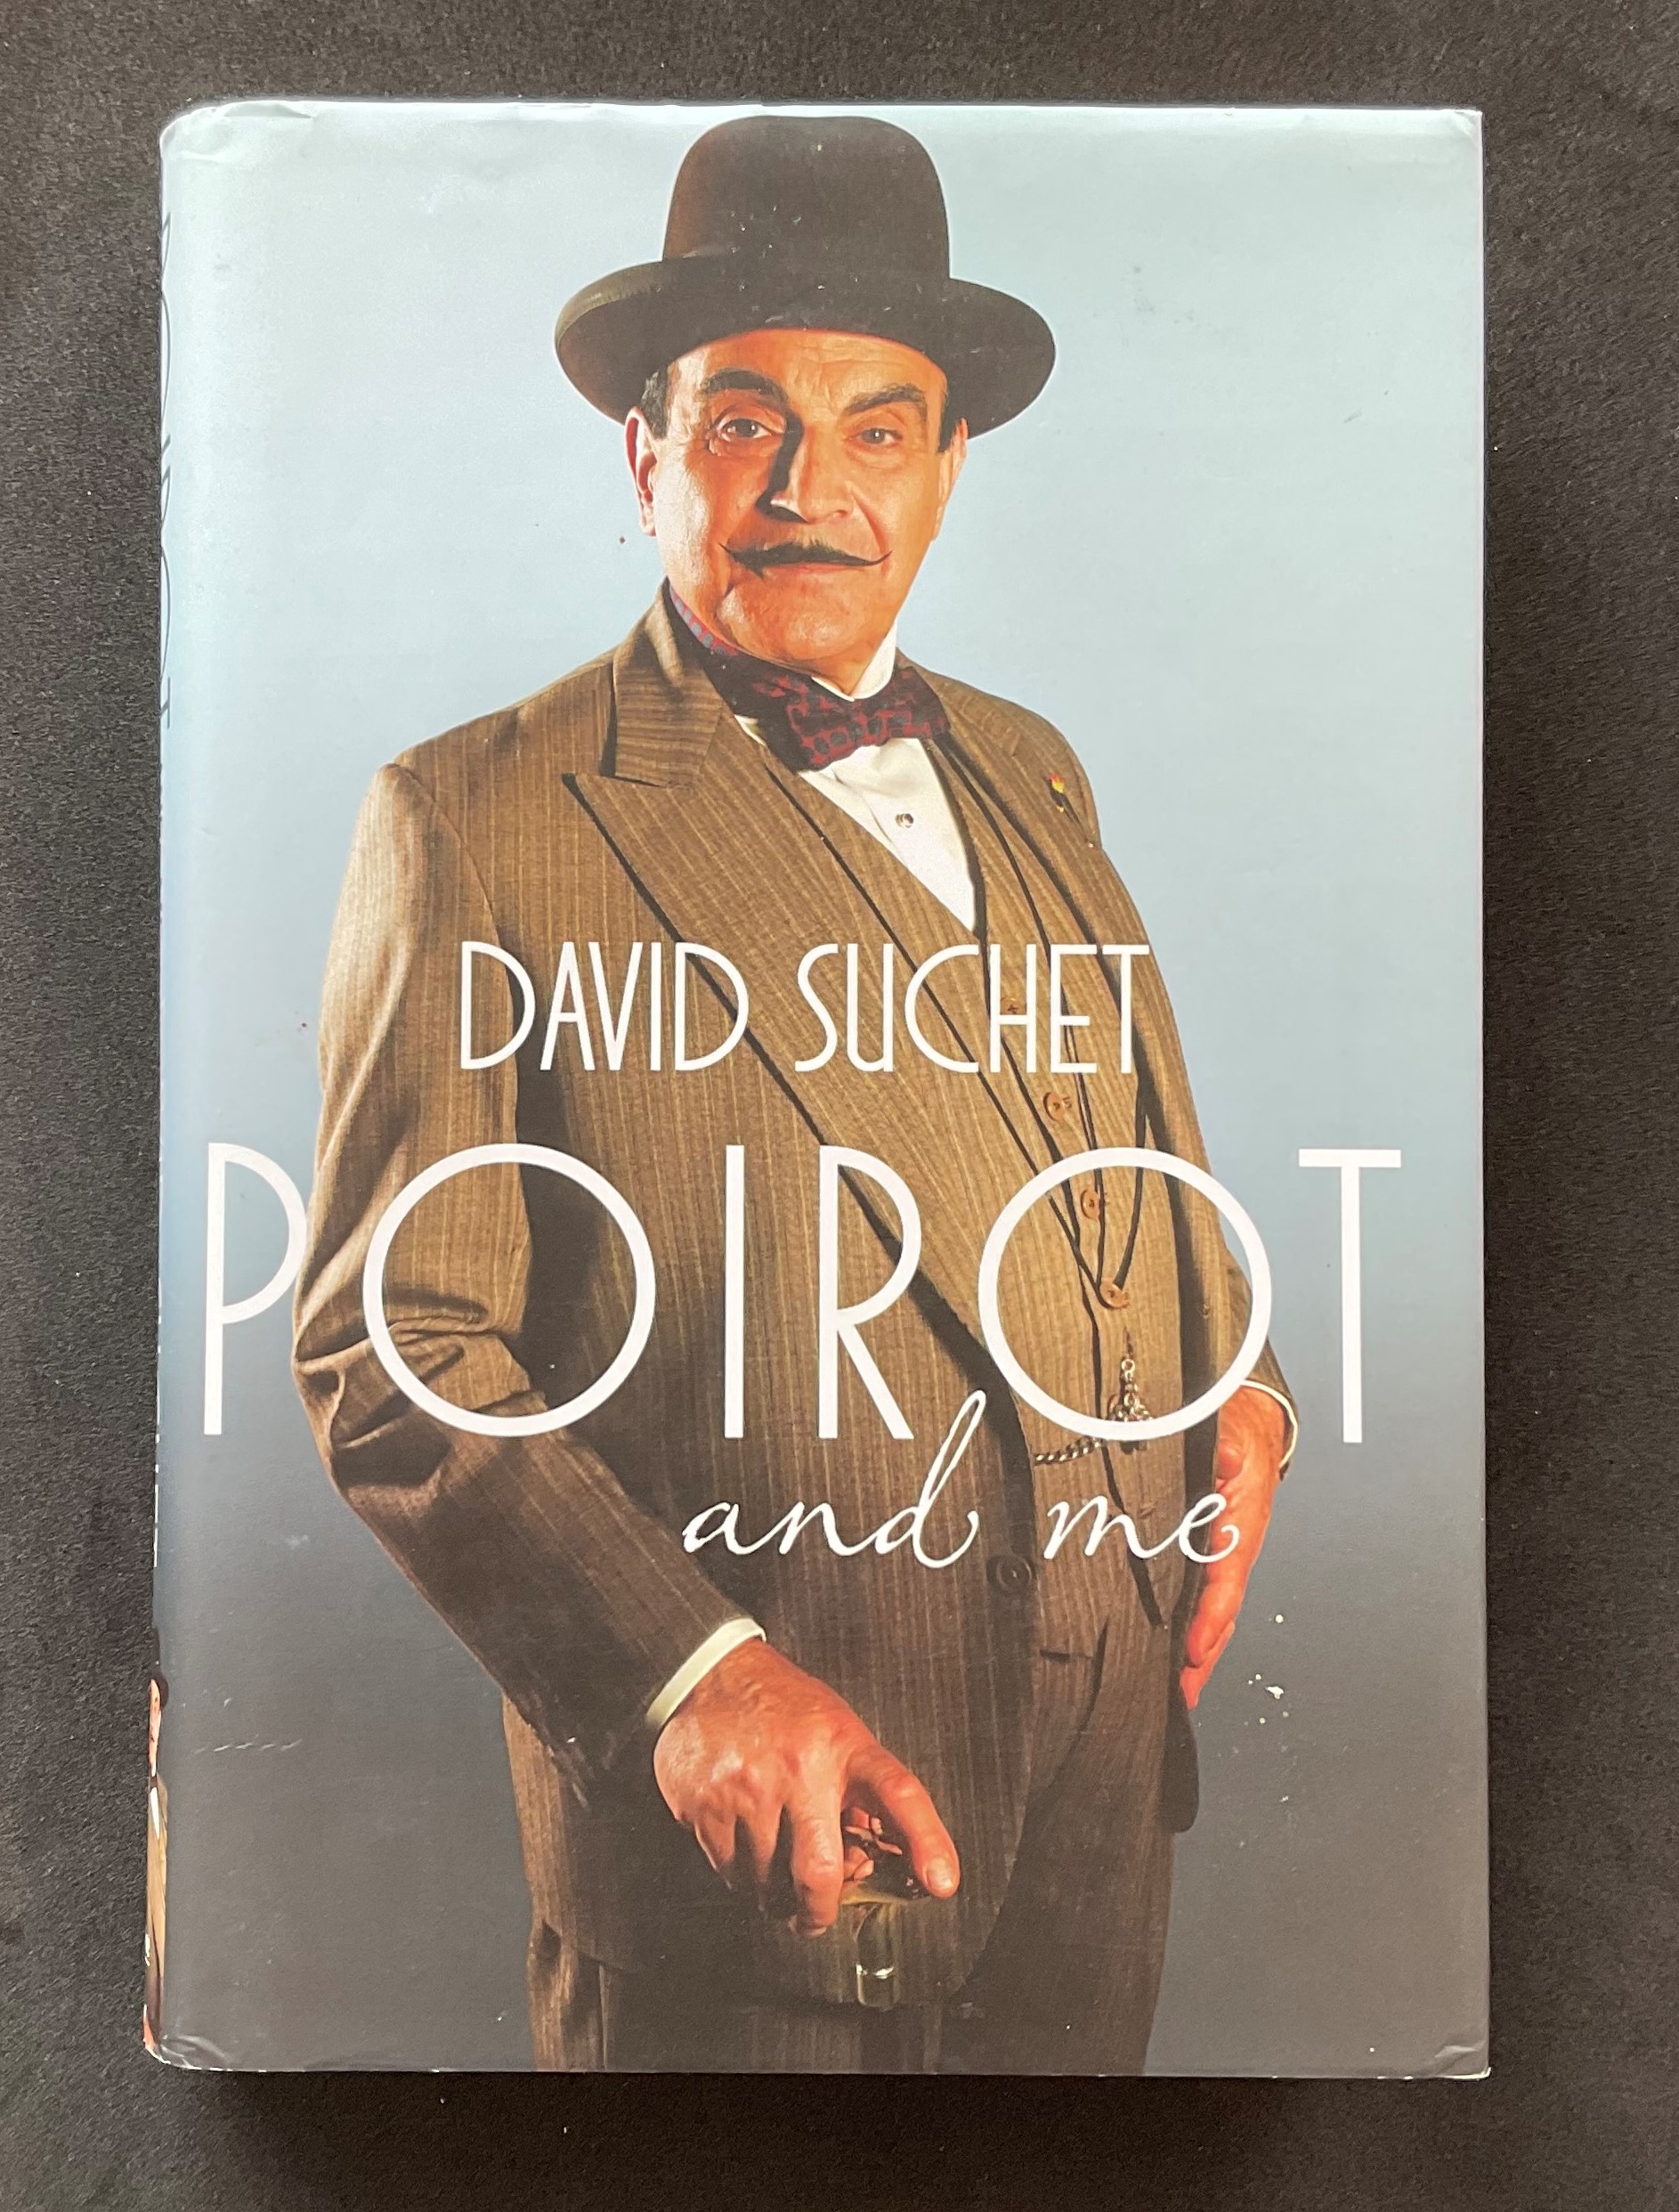 Actor David Suchet's autobiography Poirot and Me, signed. Sir David Courtney Suchet, CBE is an